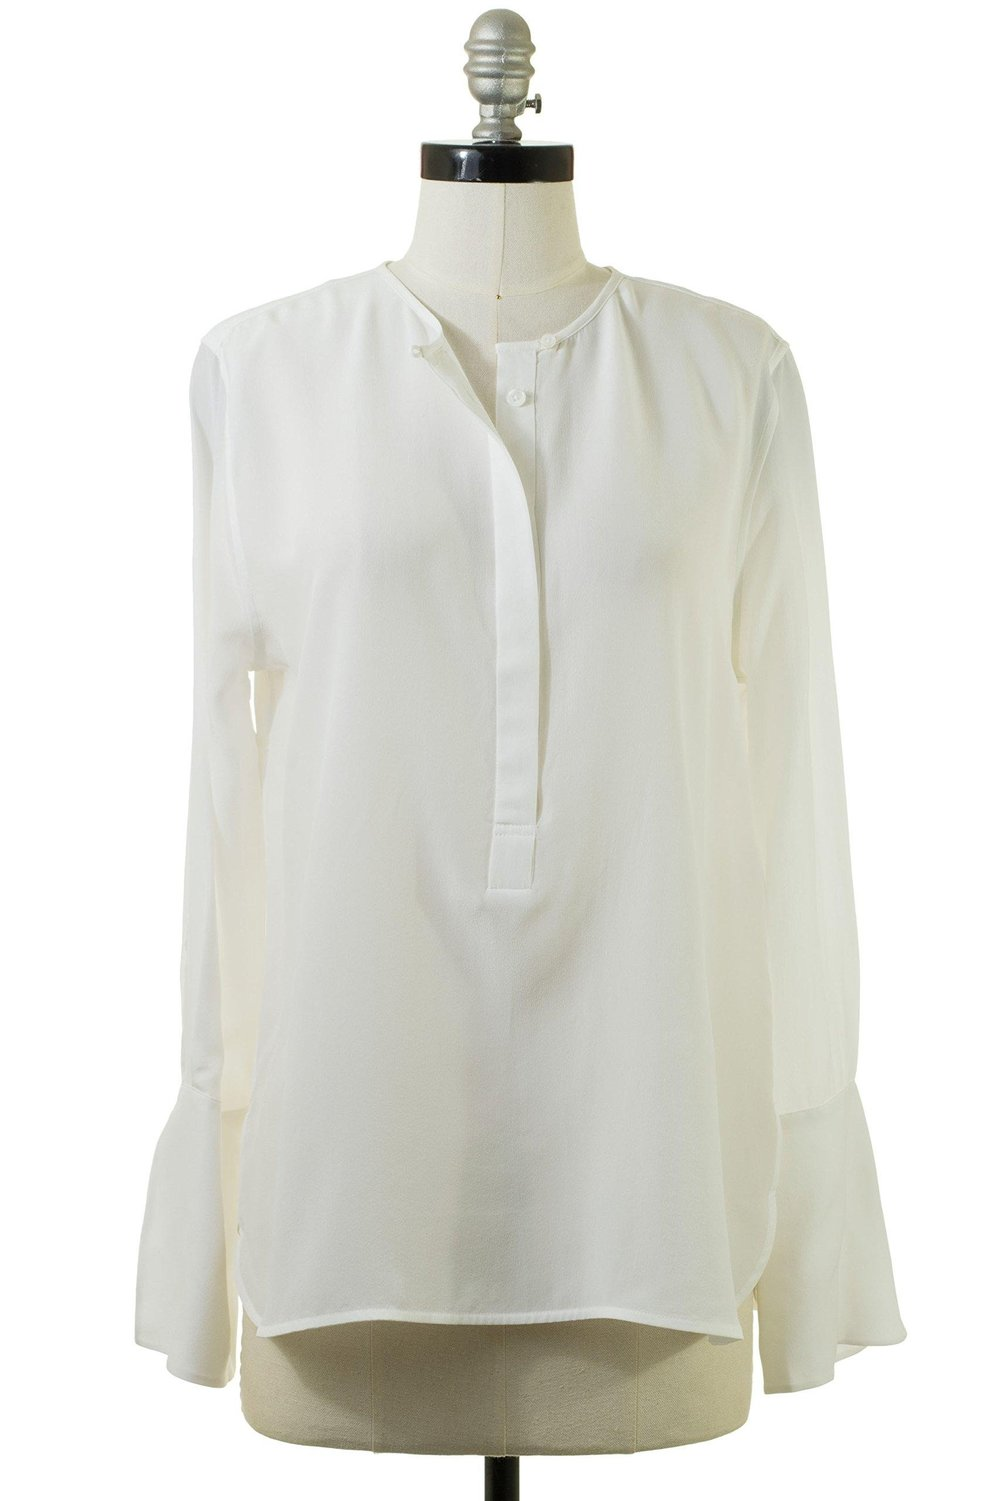 equipment-kenley-blouse-in-bright-white.jpg